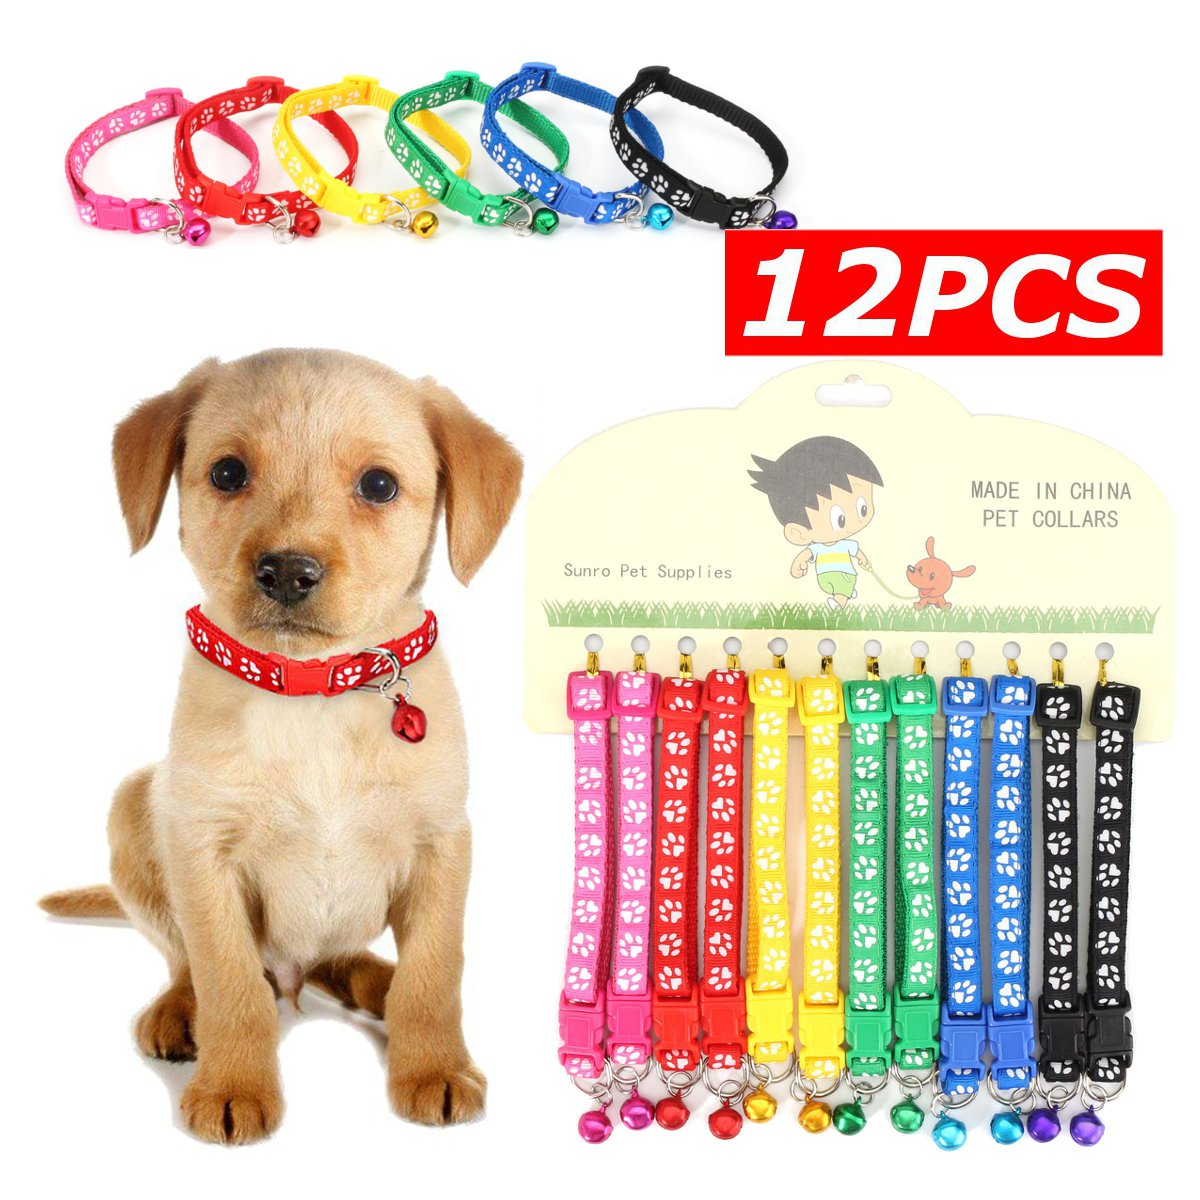 12Pcs Collars Pet Cat Nylon Collar with Bell Necklace Buckle Wholesale 6 Colors